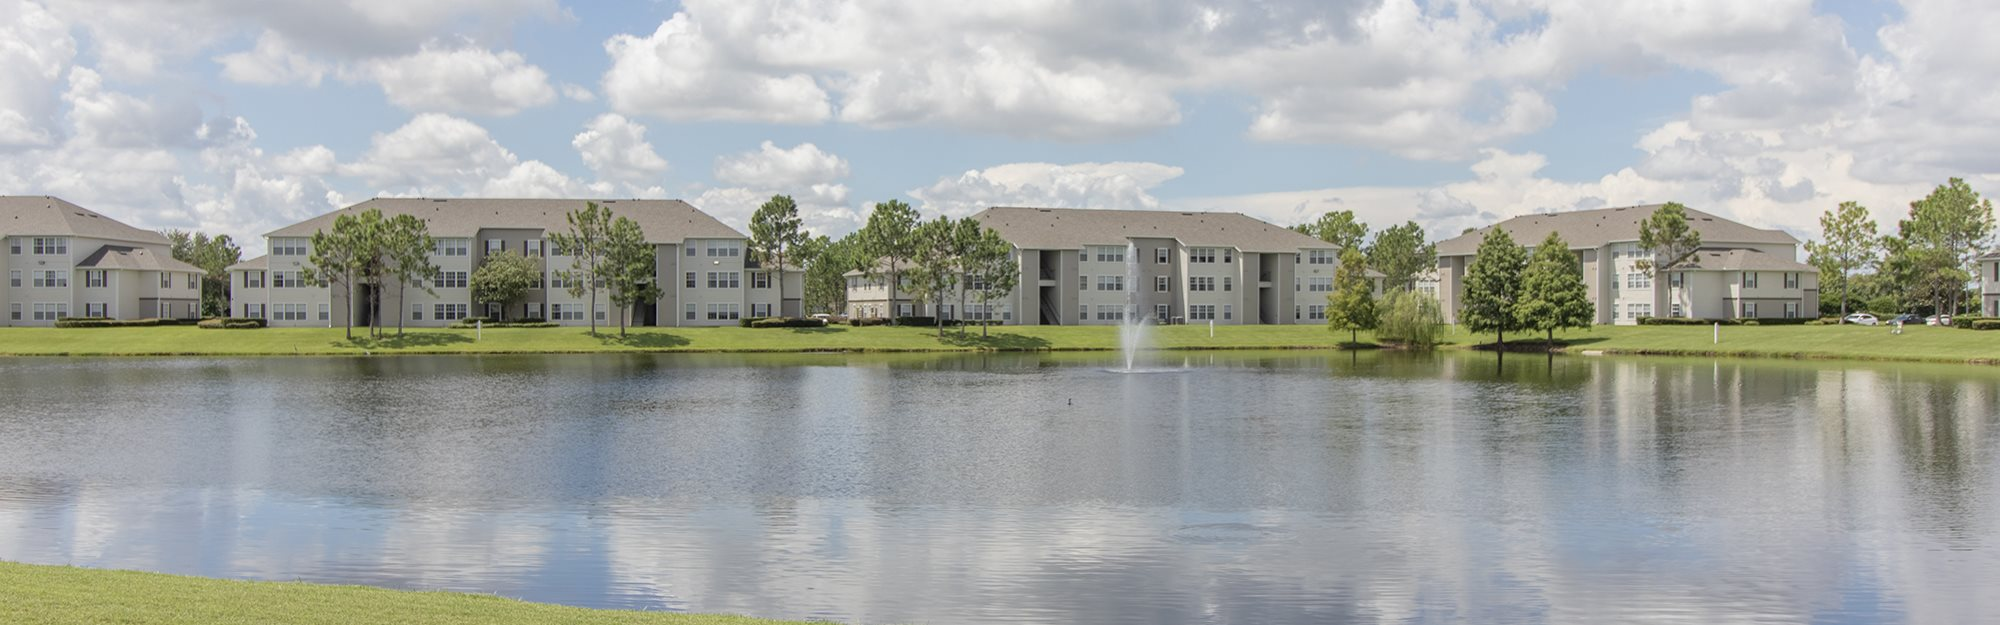 Lee Vista Apartments for rent in Orlando, FL. Make this community your new home or visit other ConcordRENTS communities at ConcordRENTS.com. Building exterior with lake